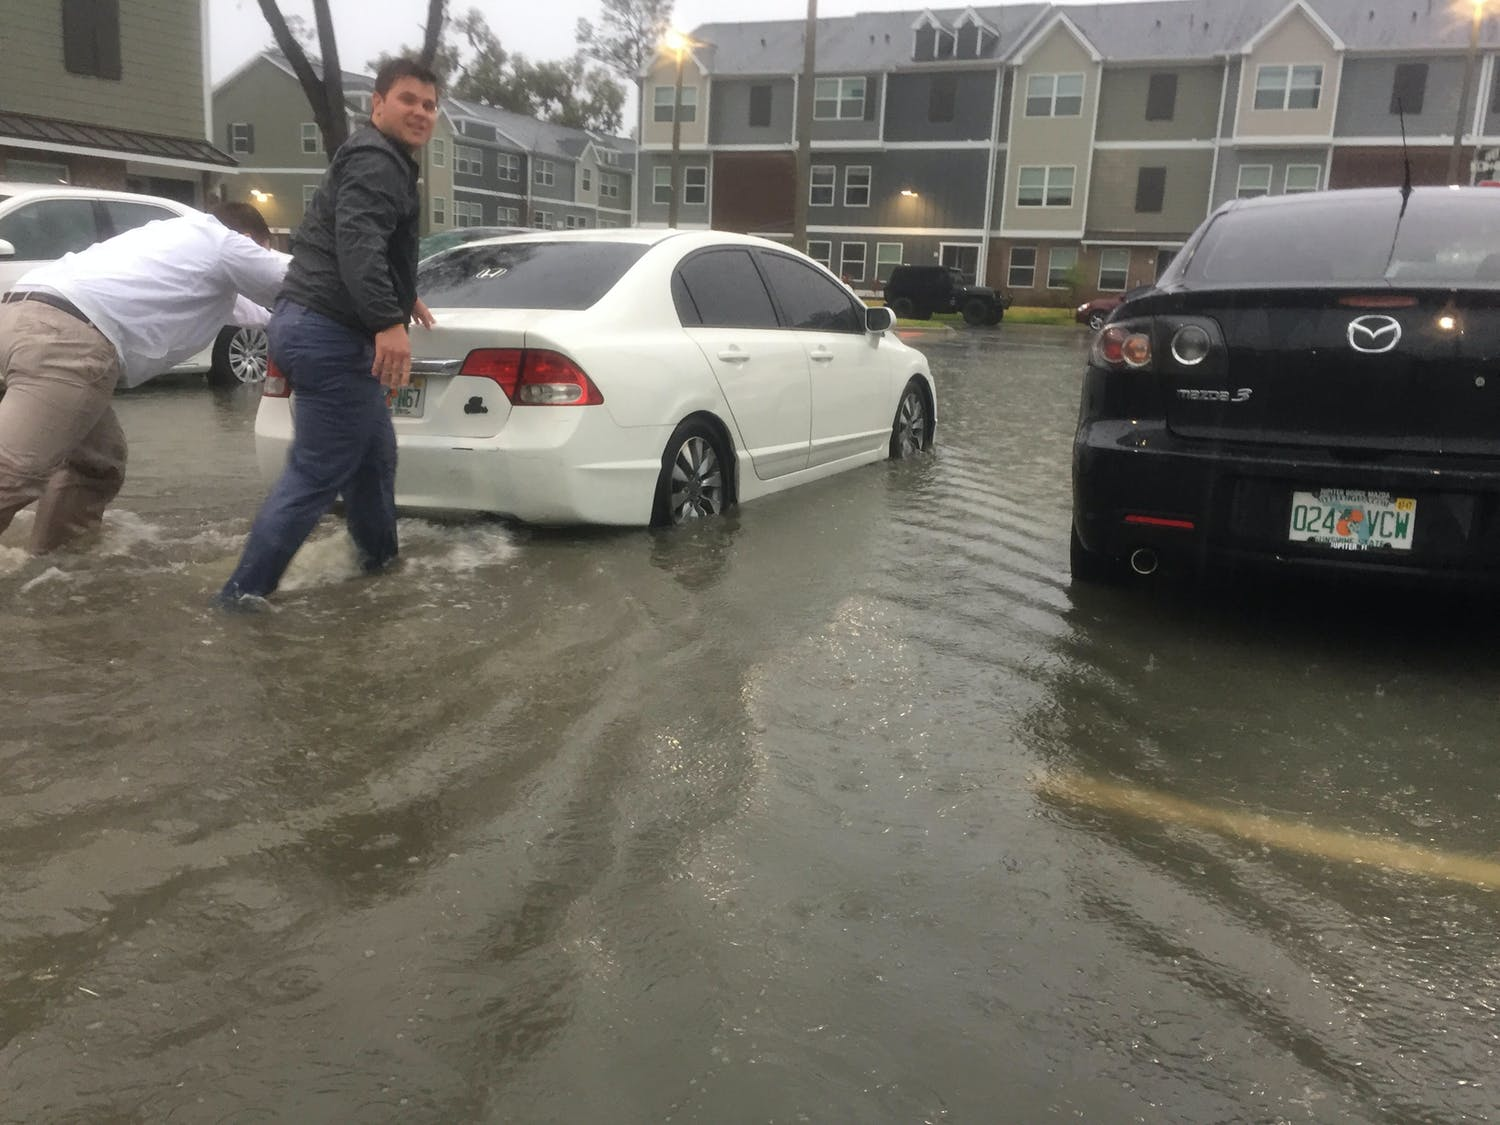 Two men at The Ridge at Gainesville push a car through a flooded parking lot on Tuesday.